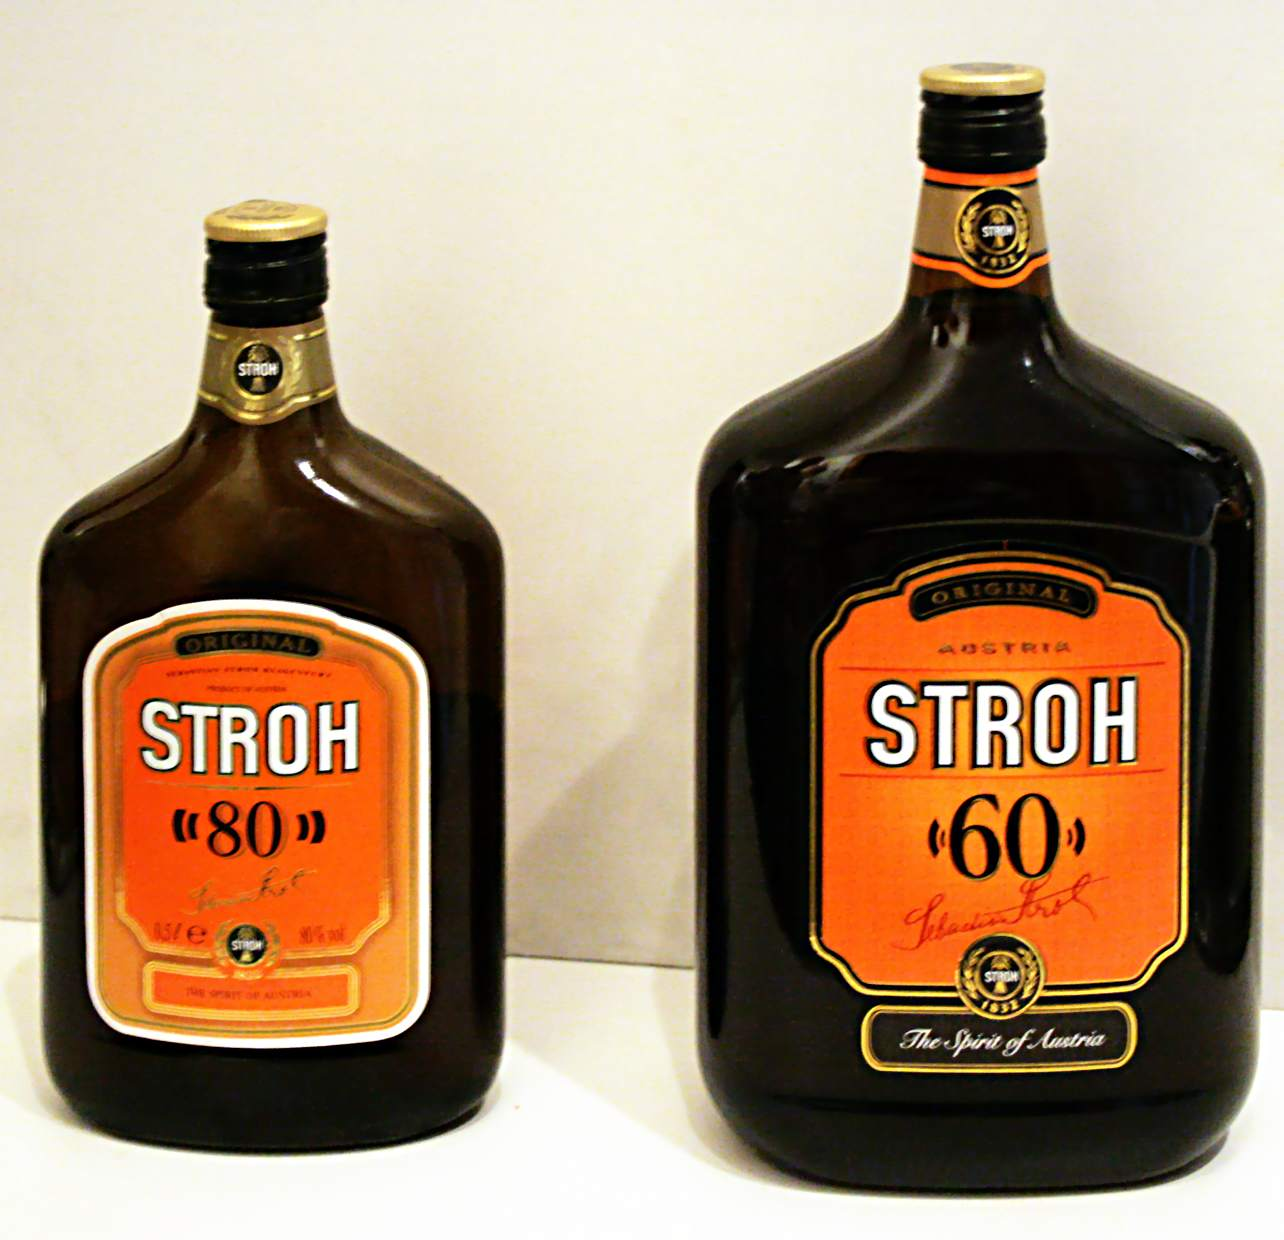 how to drink stroh rum